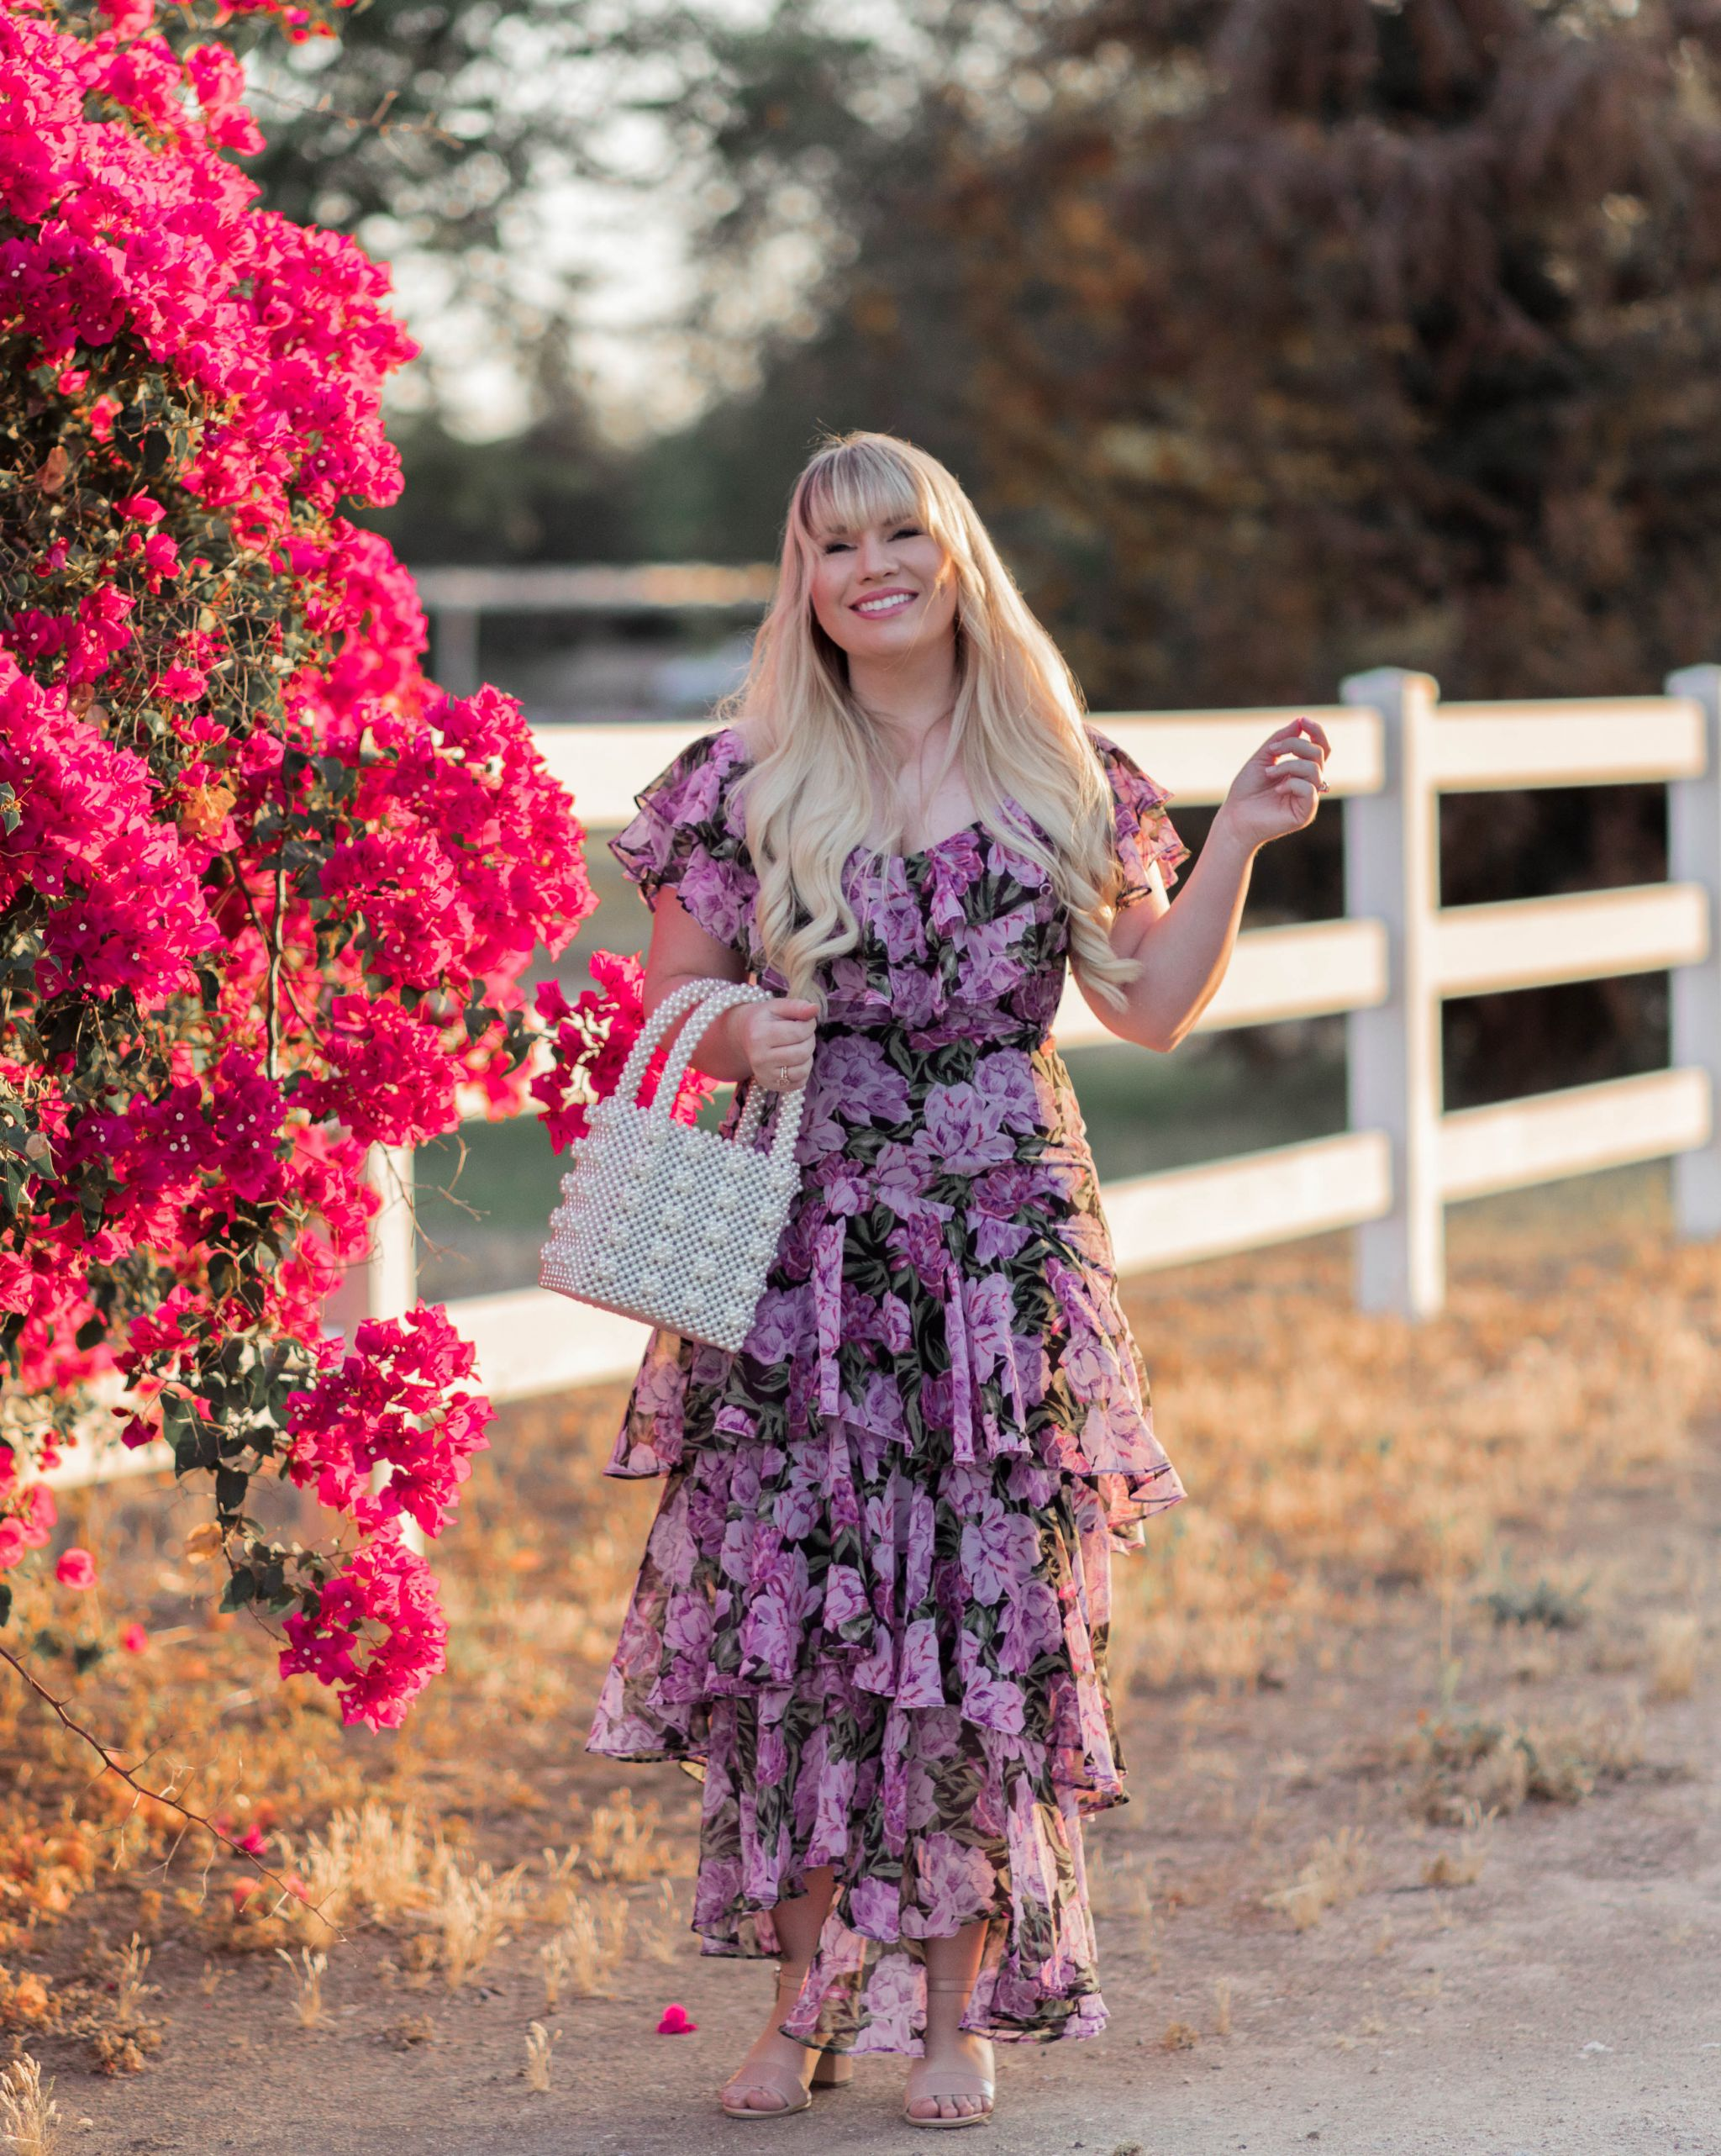 Elizabeth Hugen from Lizzie in Lace shares her summer bucket list and styles a gorgeous WAYF floral dress!